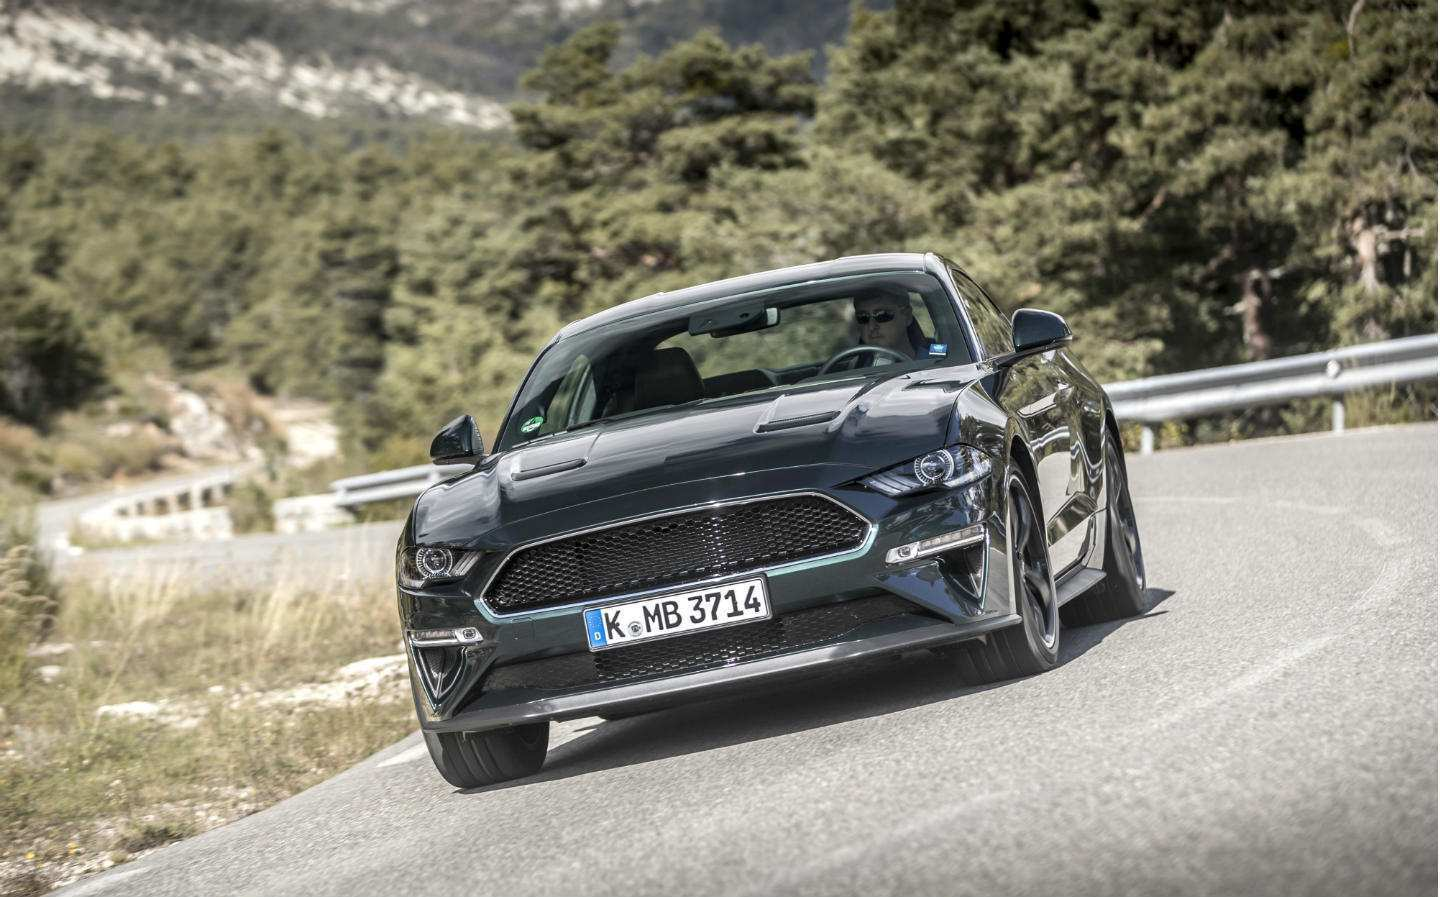 28 New Best 2019 Ford Mustang Bullitt Picture Release Date And Review Model for Best 2019 Ford Mustang Bullitt Picture Release Date And Review